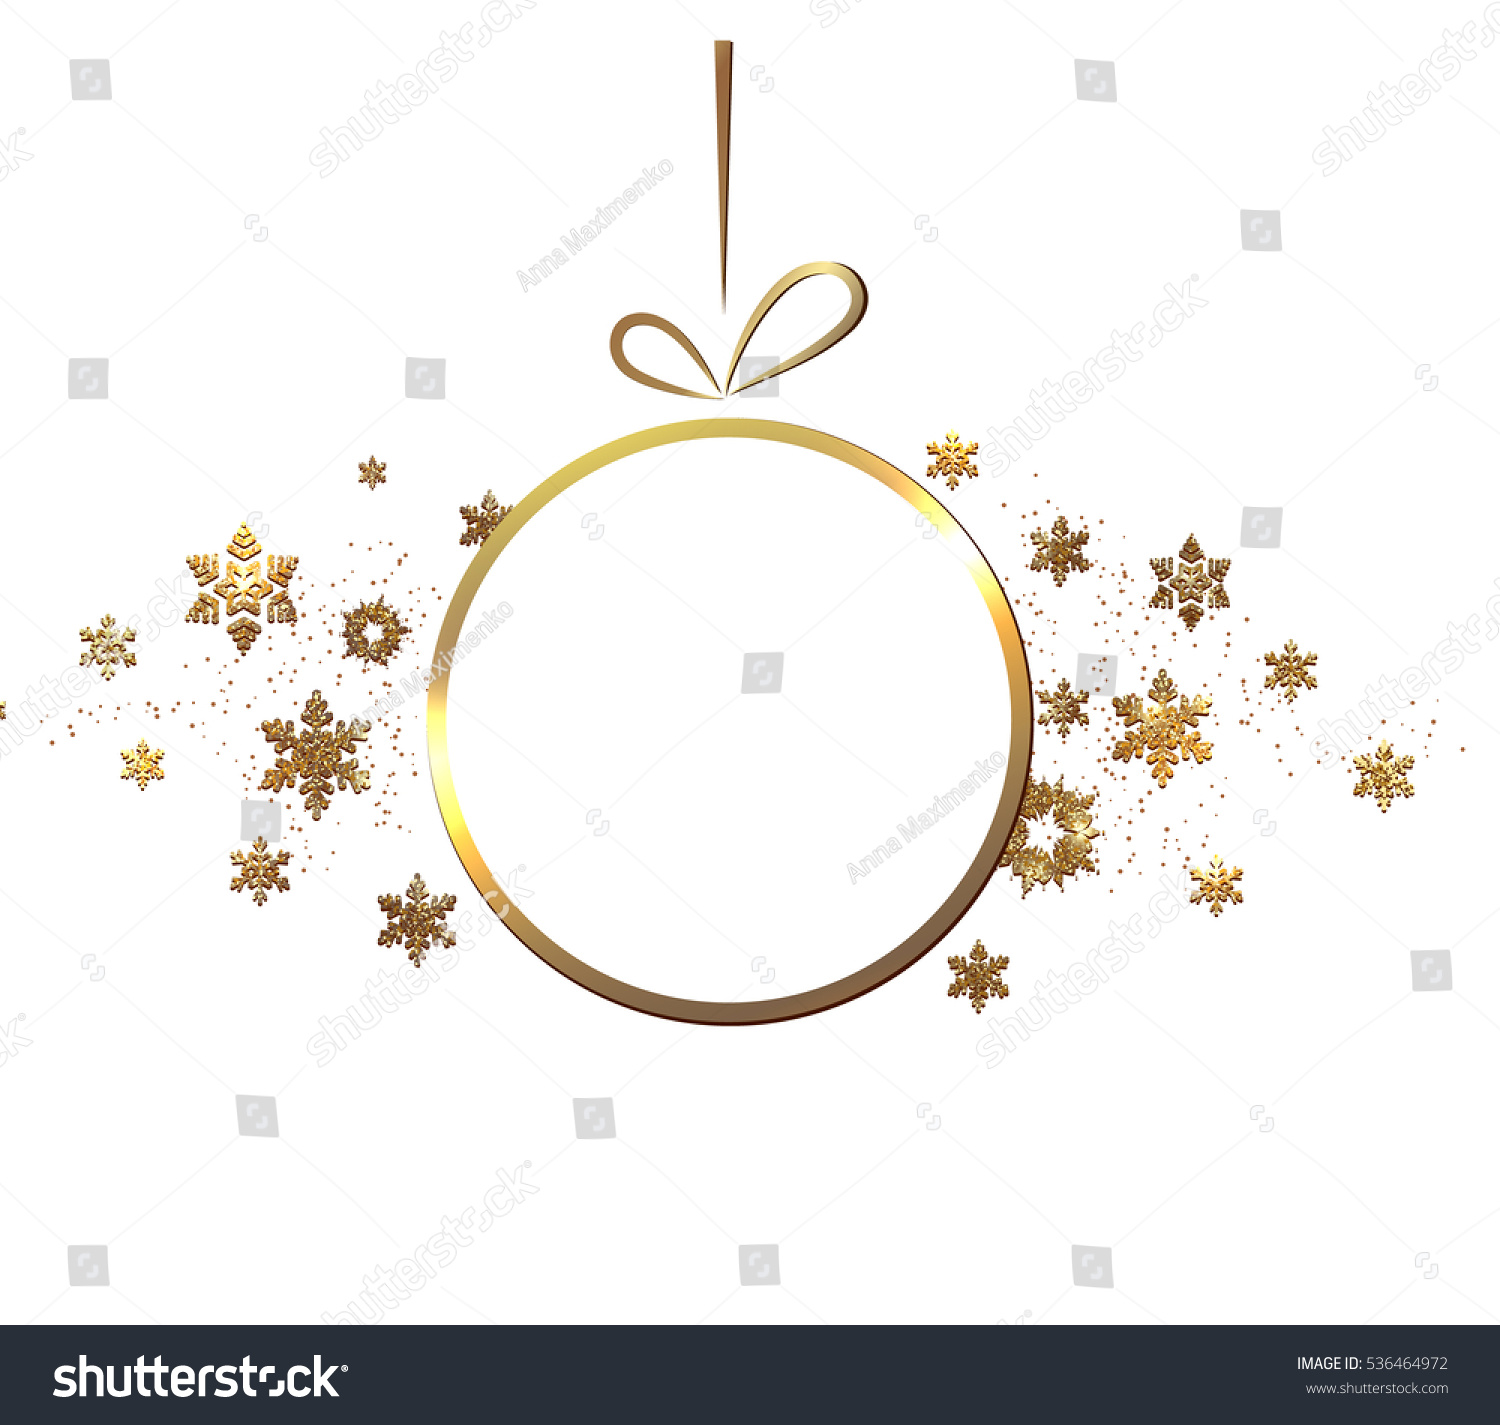 The Gold Glitter Winter Holiday Border Frame In Shape Of Christmas Ornament For Your